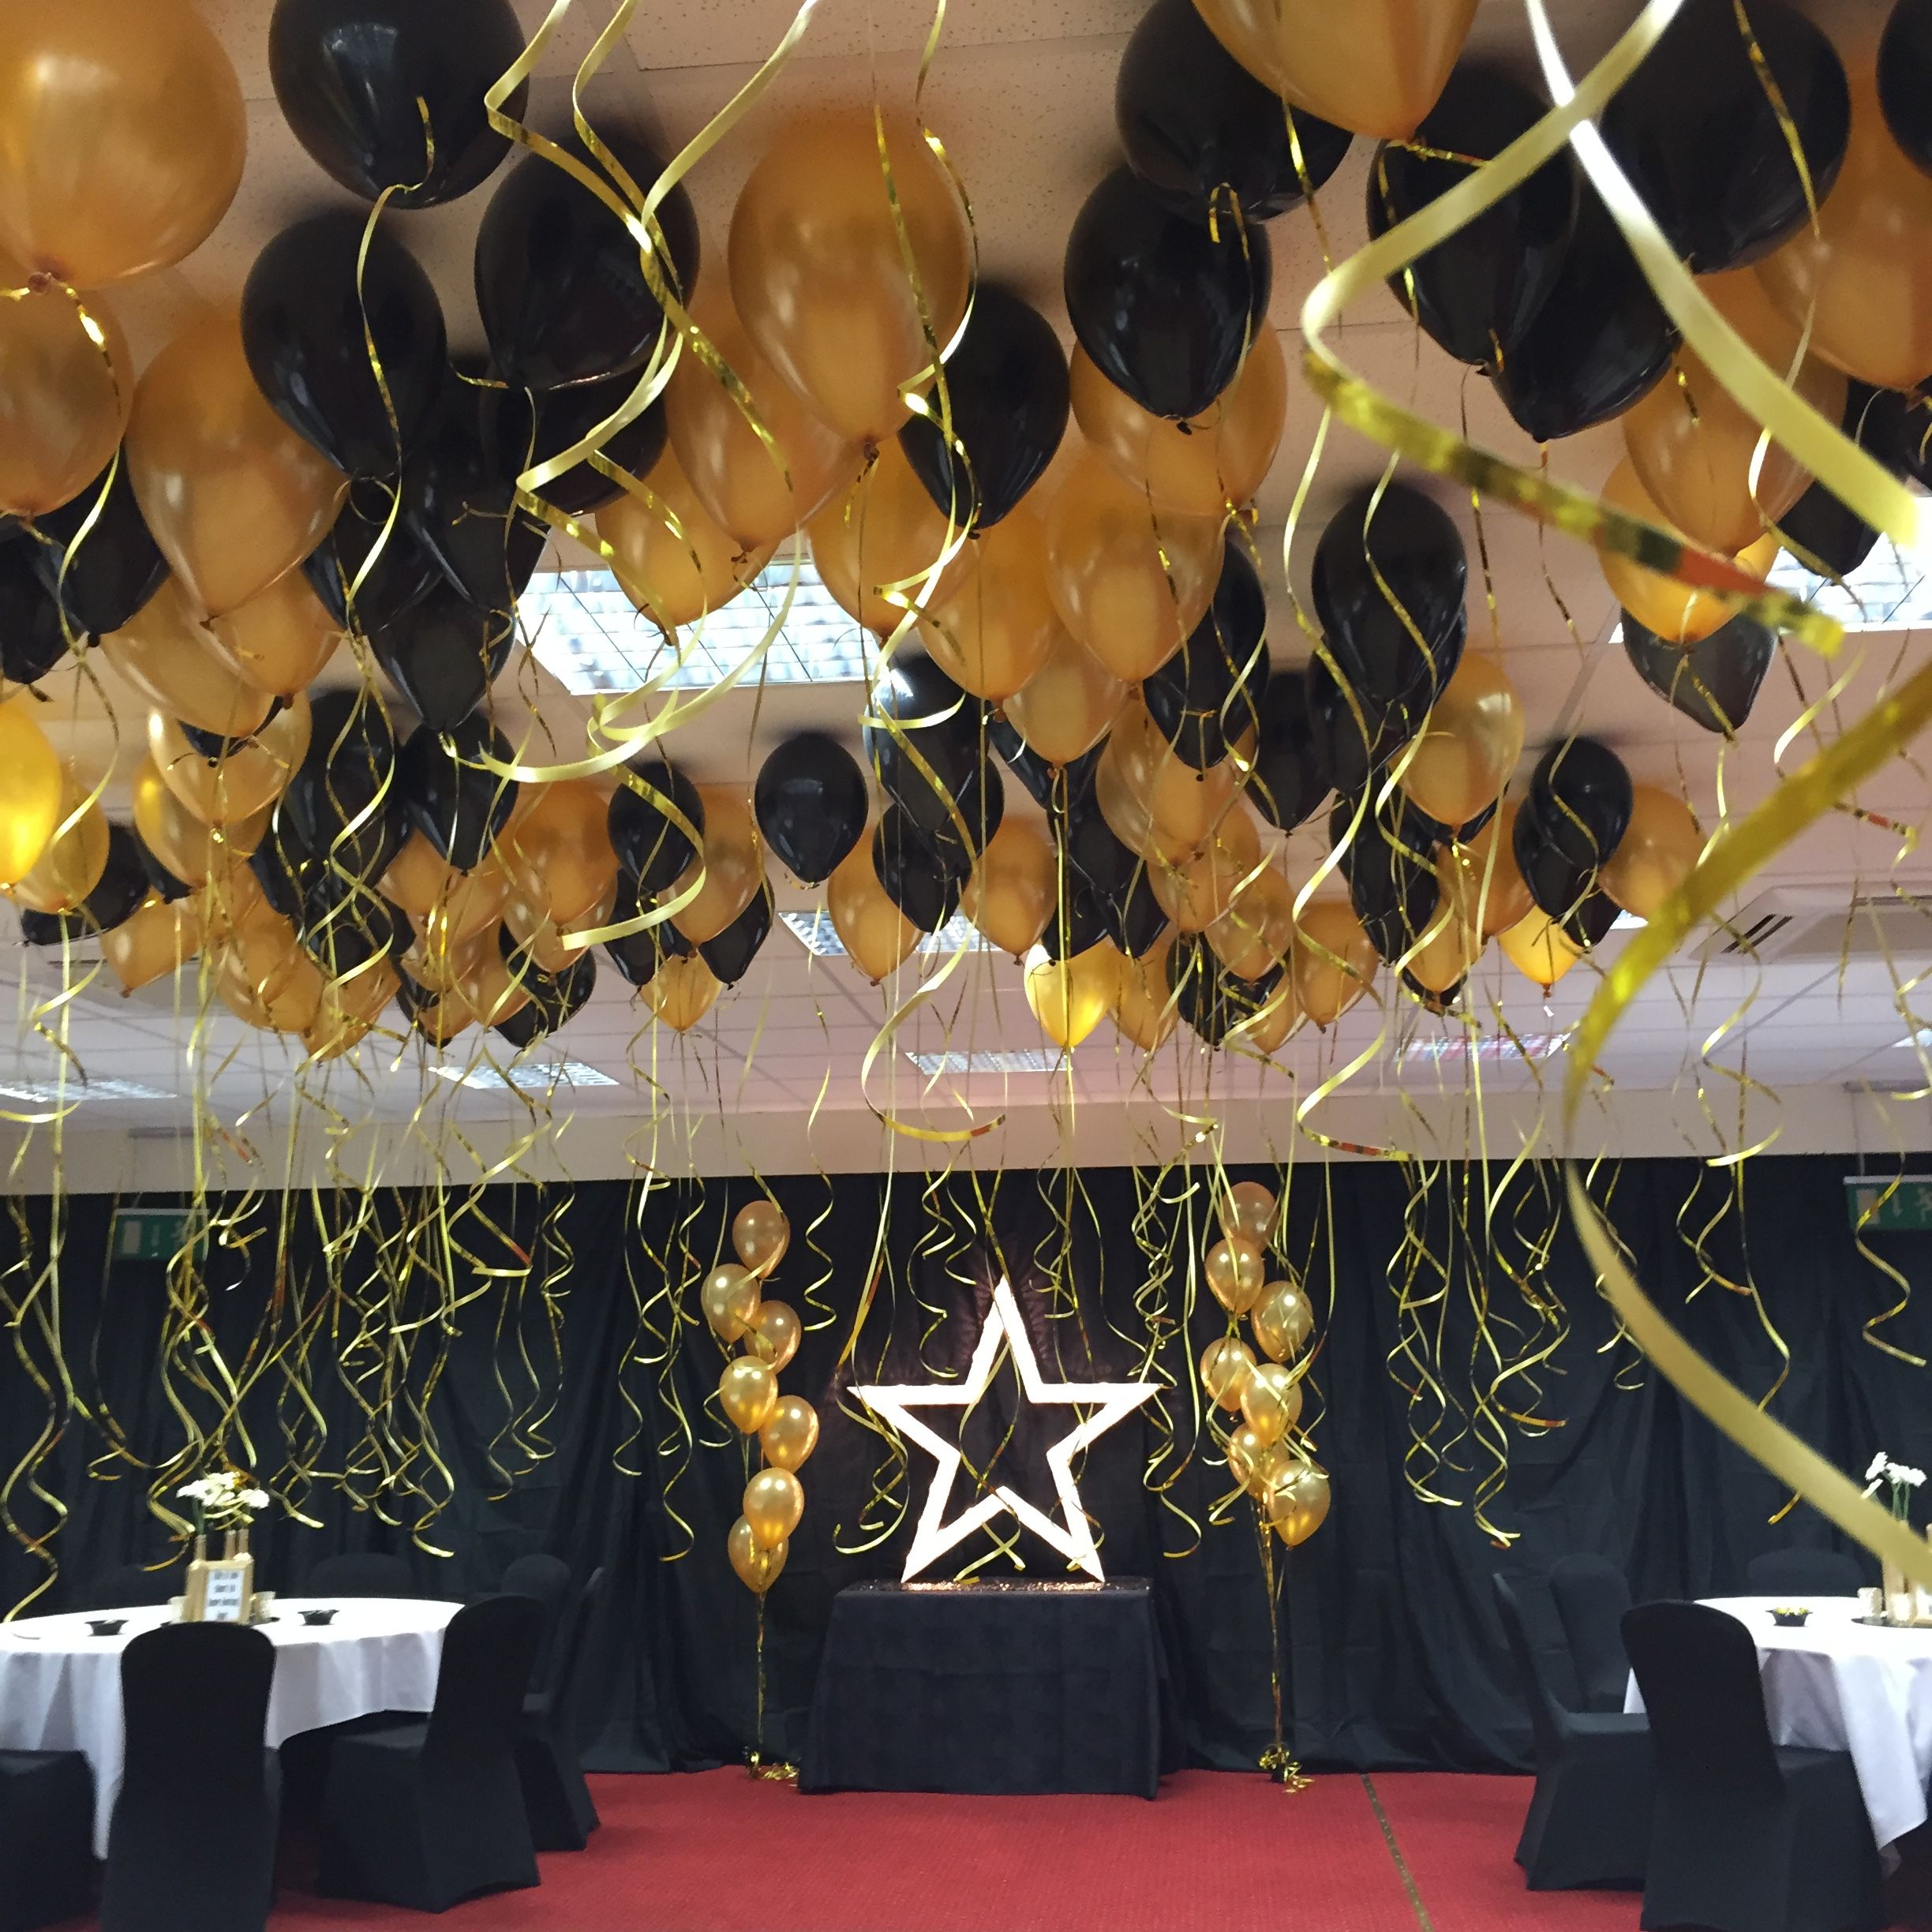 Military Ball Decorations: Black And Gold Balloon Ceiling Decoration With Gold Light